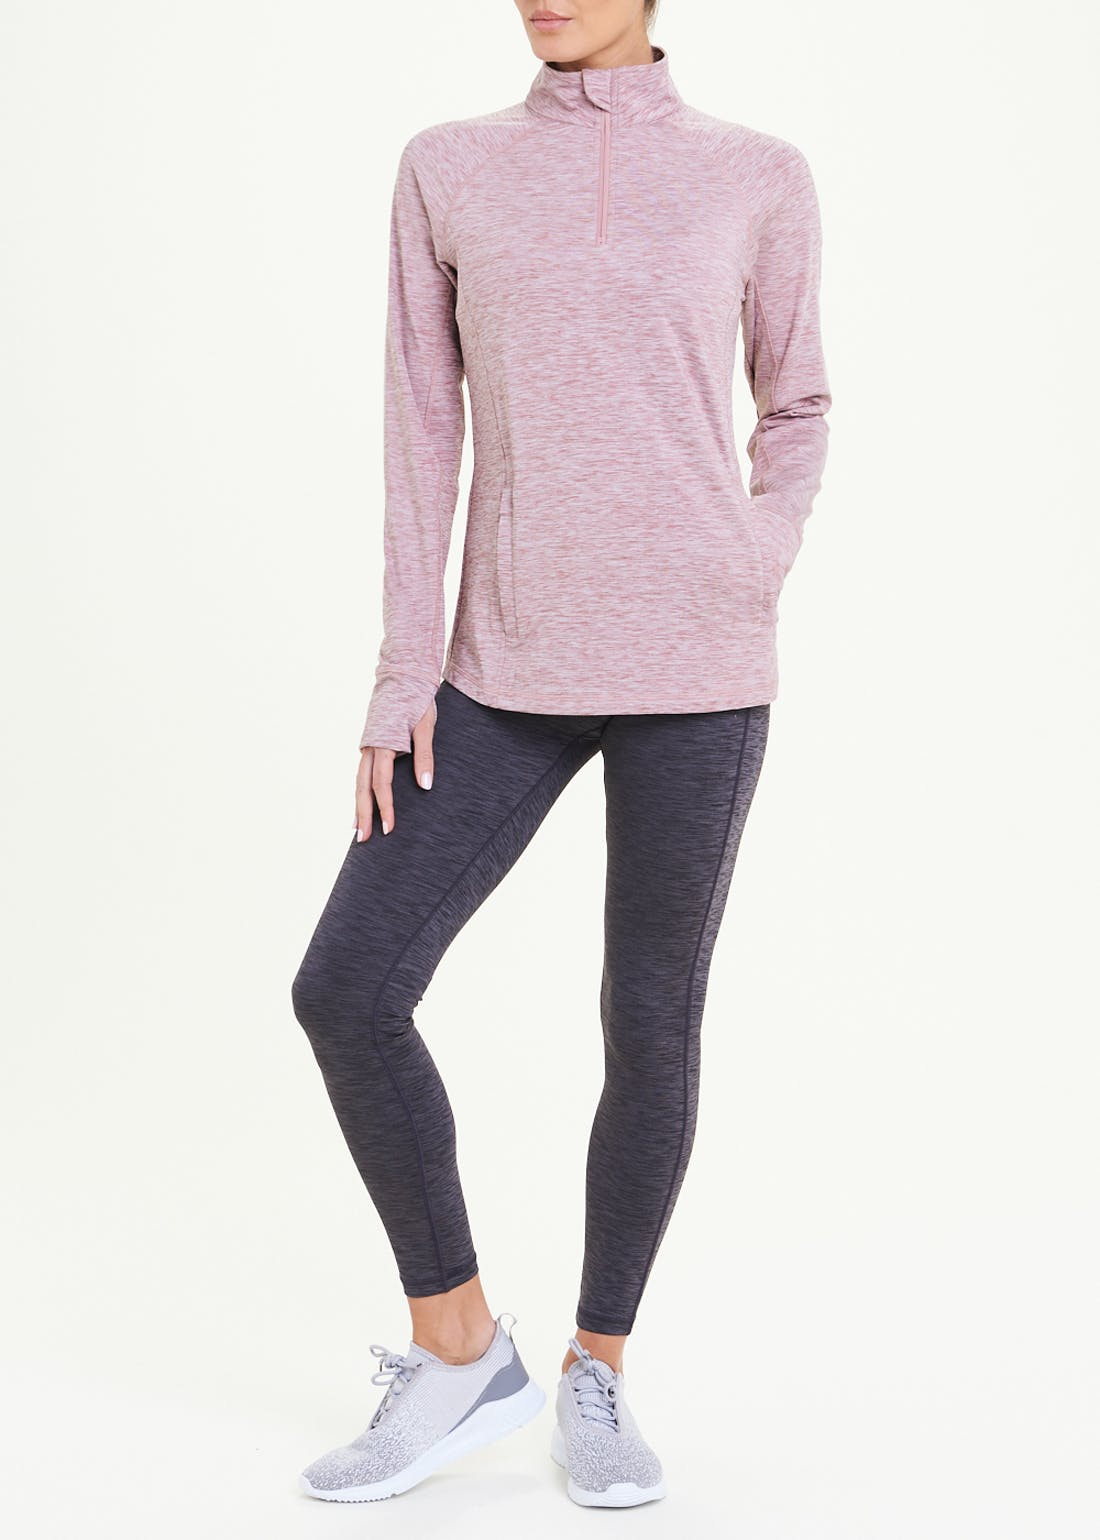 Souluxe Pink Fleece Lined Gym Sweatshirt